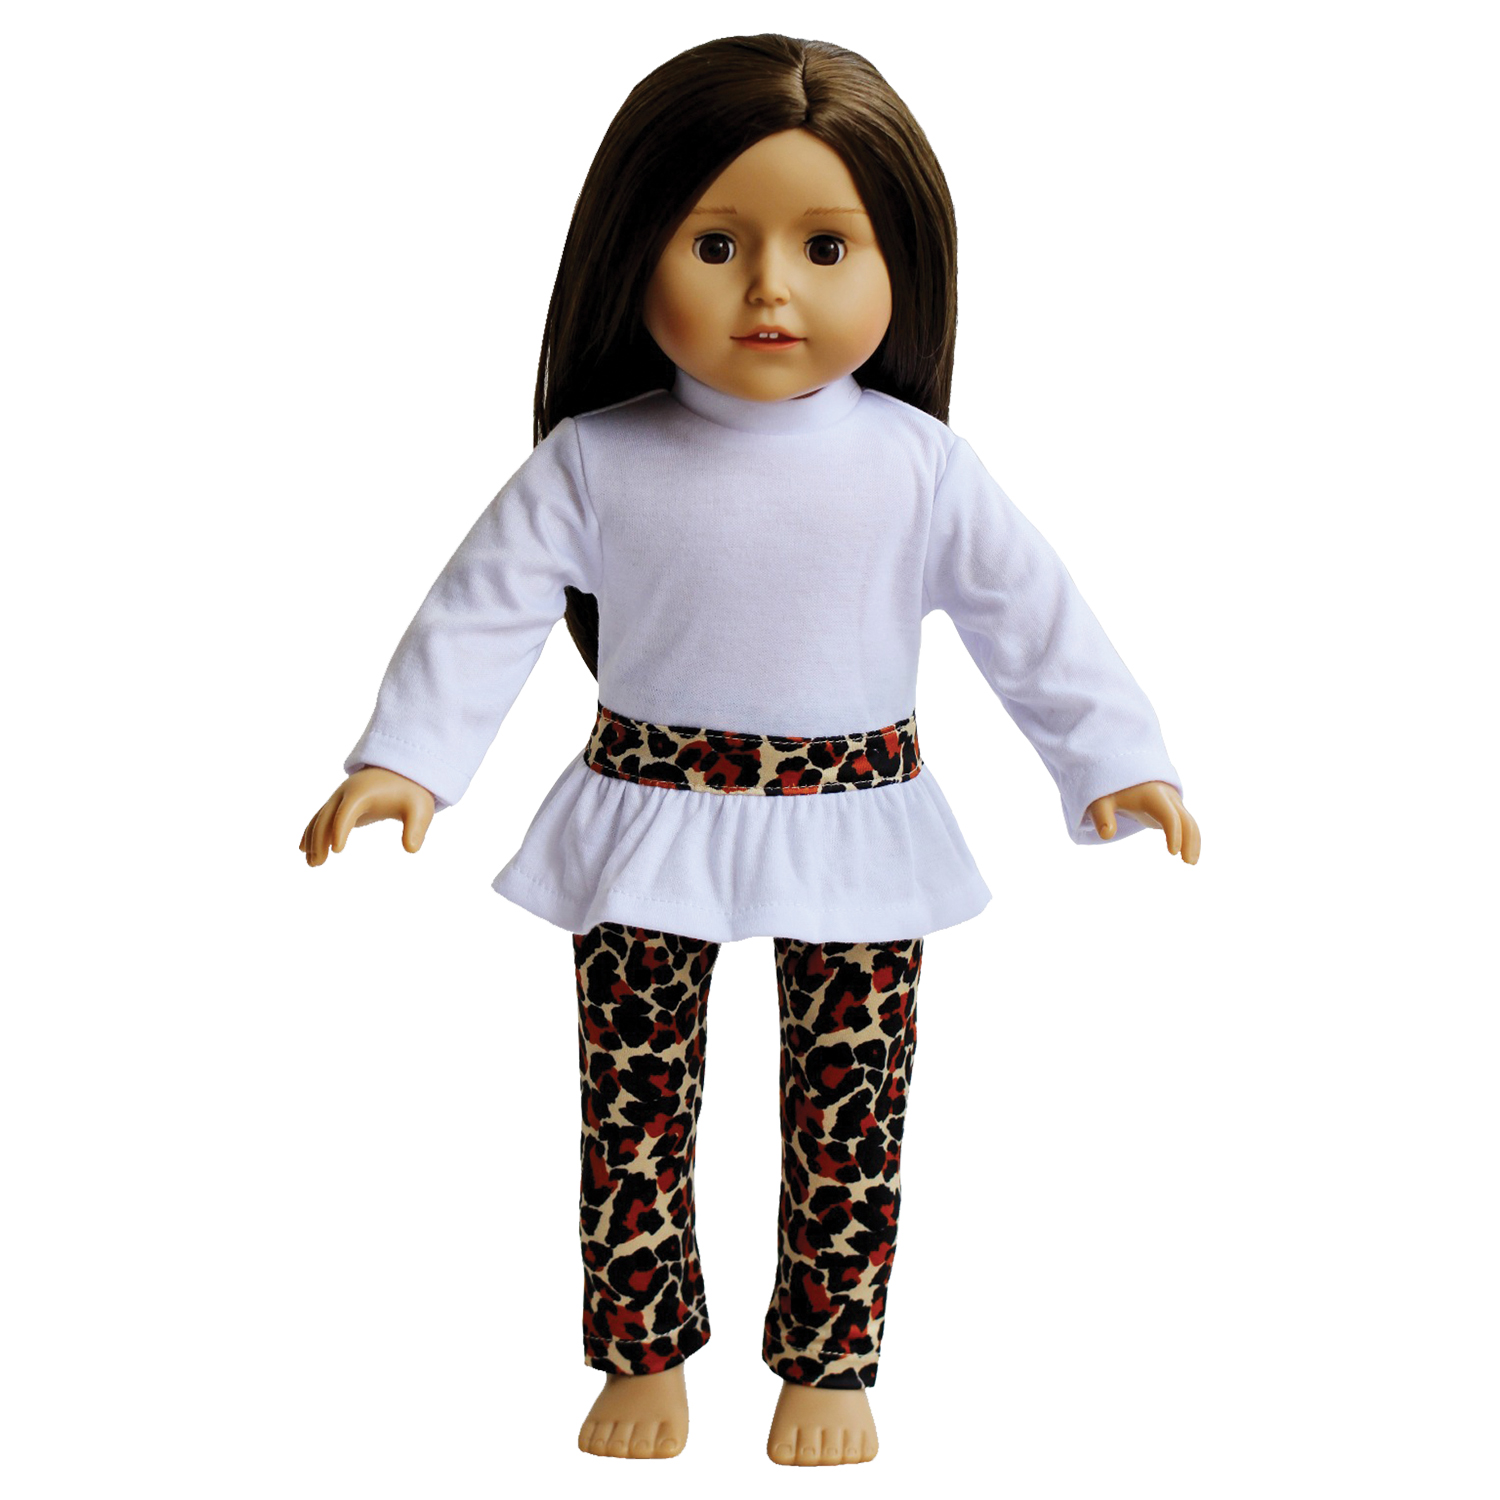 Animal Print Leggings and White Top for Dolls- 18 inch Doll Clothing